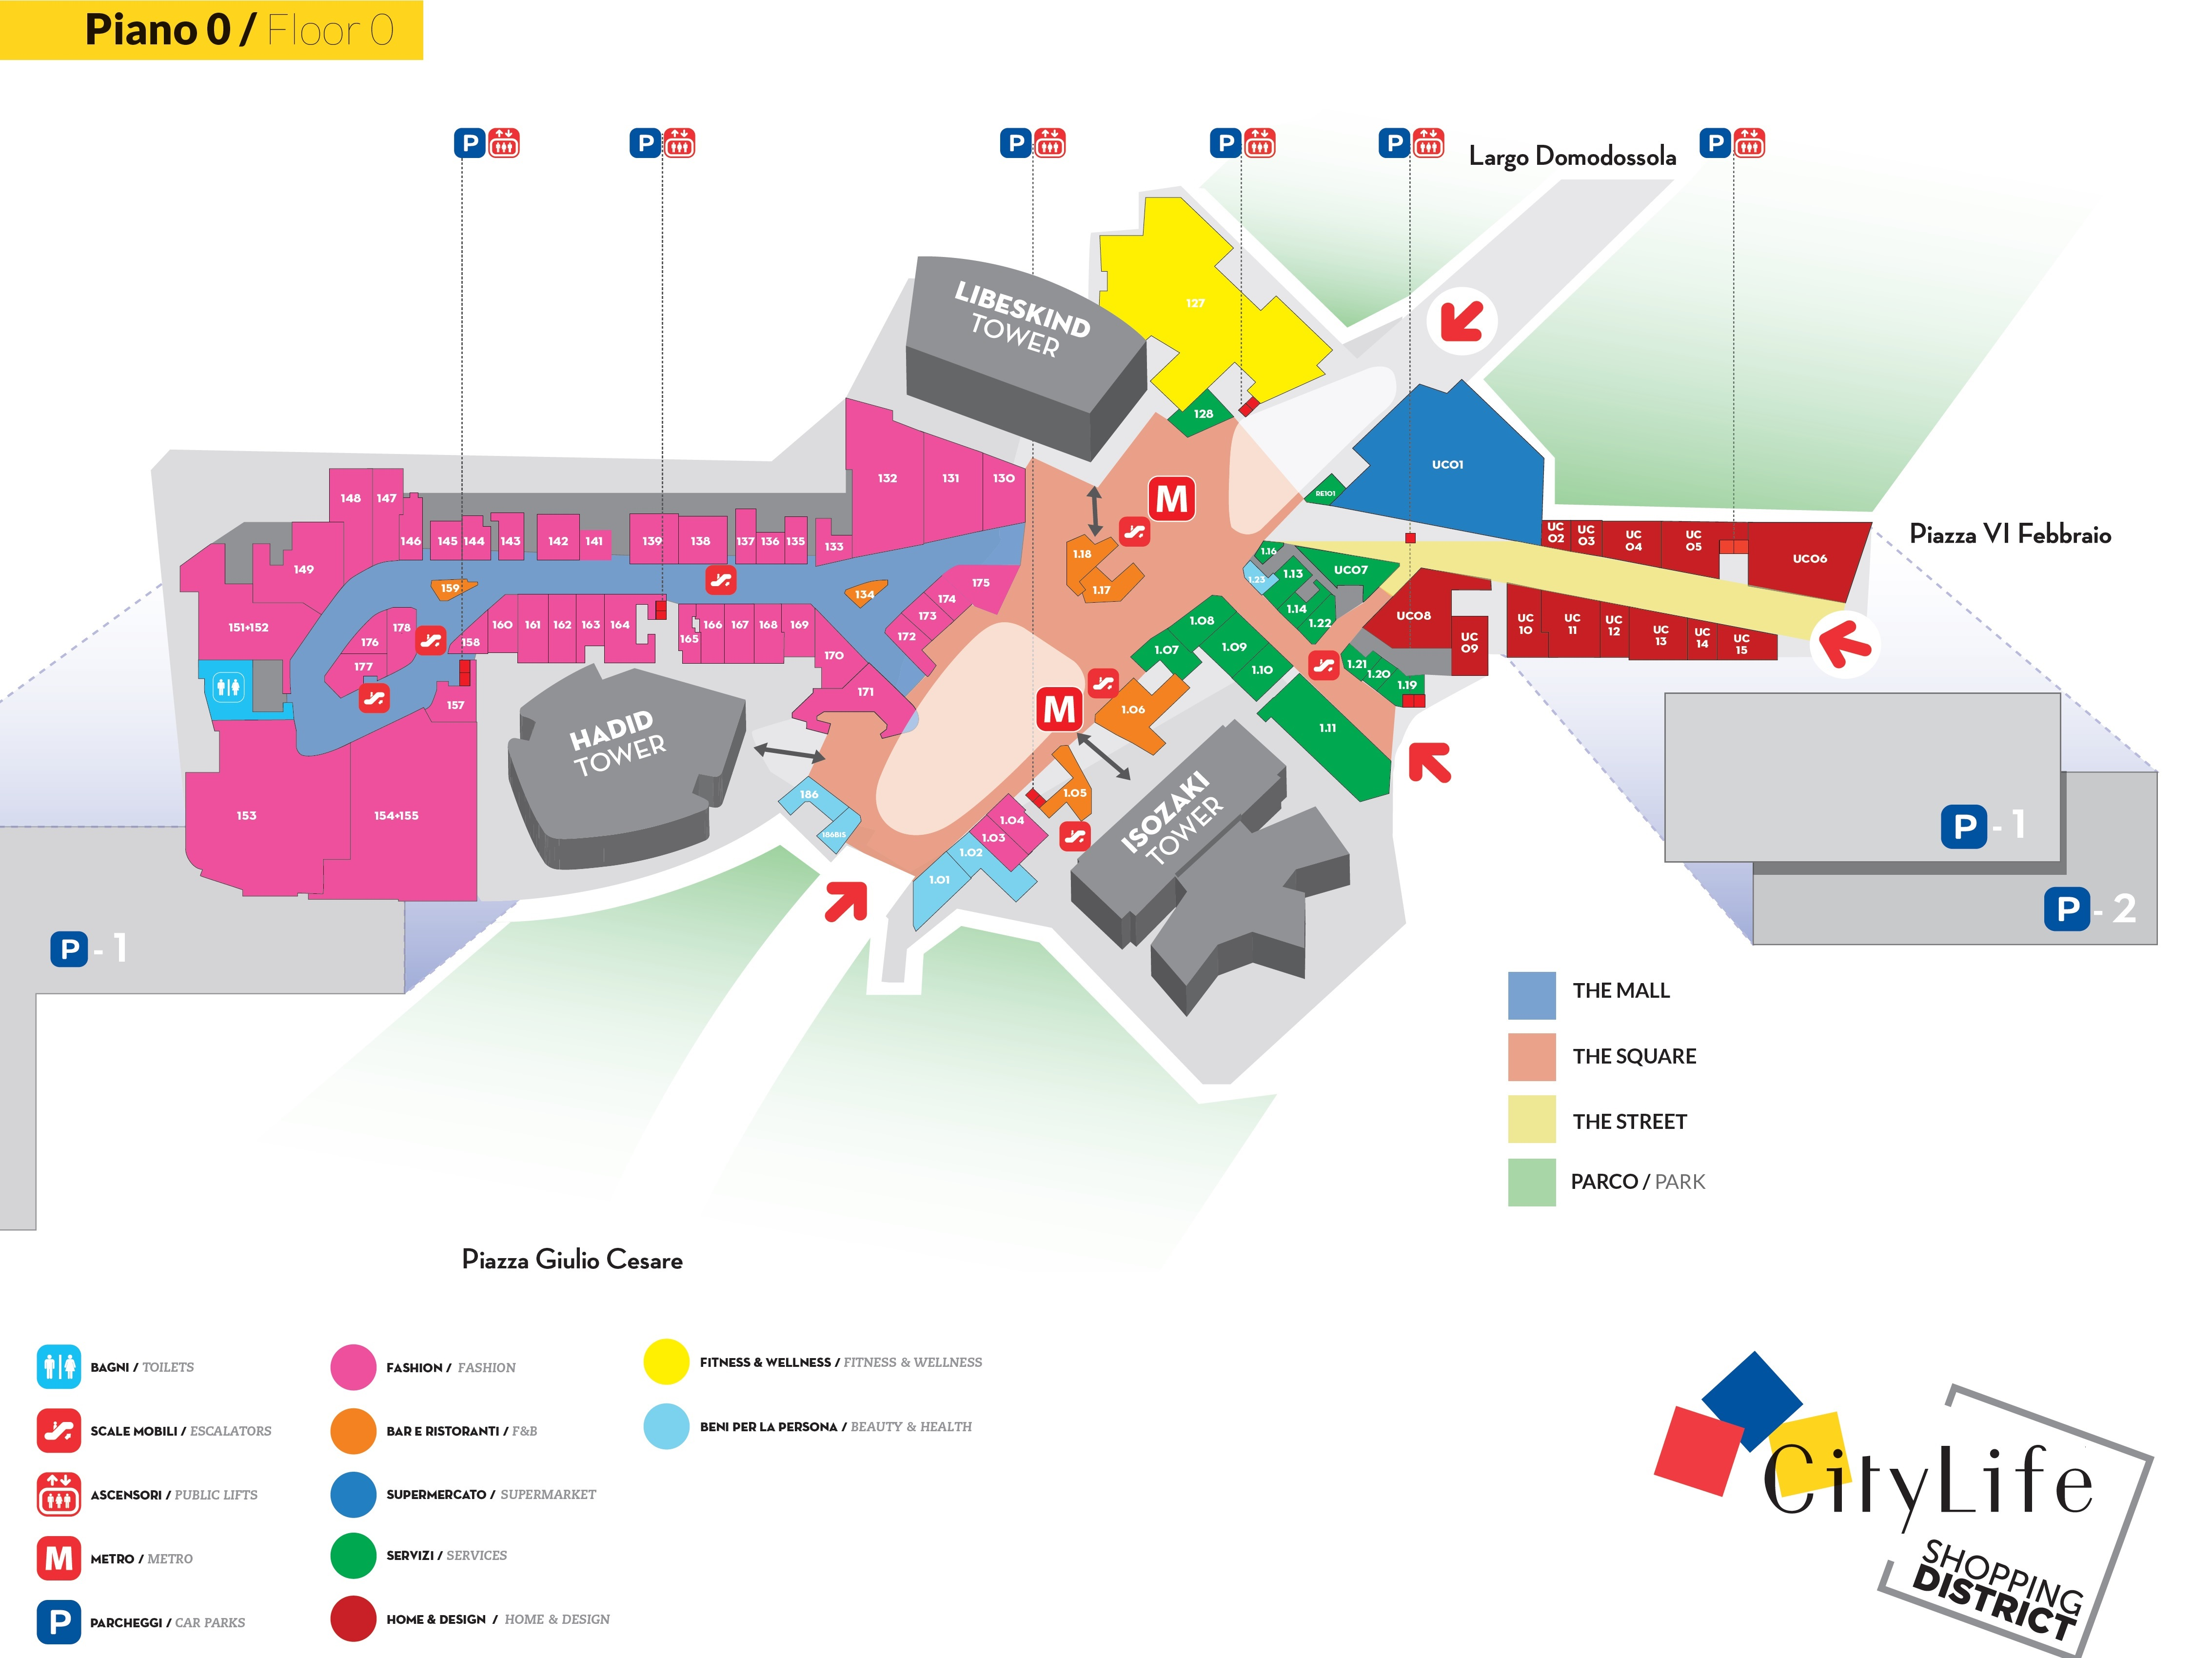 CityLife Shopping District aprirà il 30 Novembre 2017